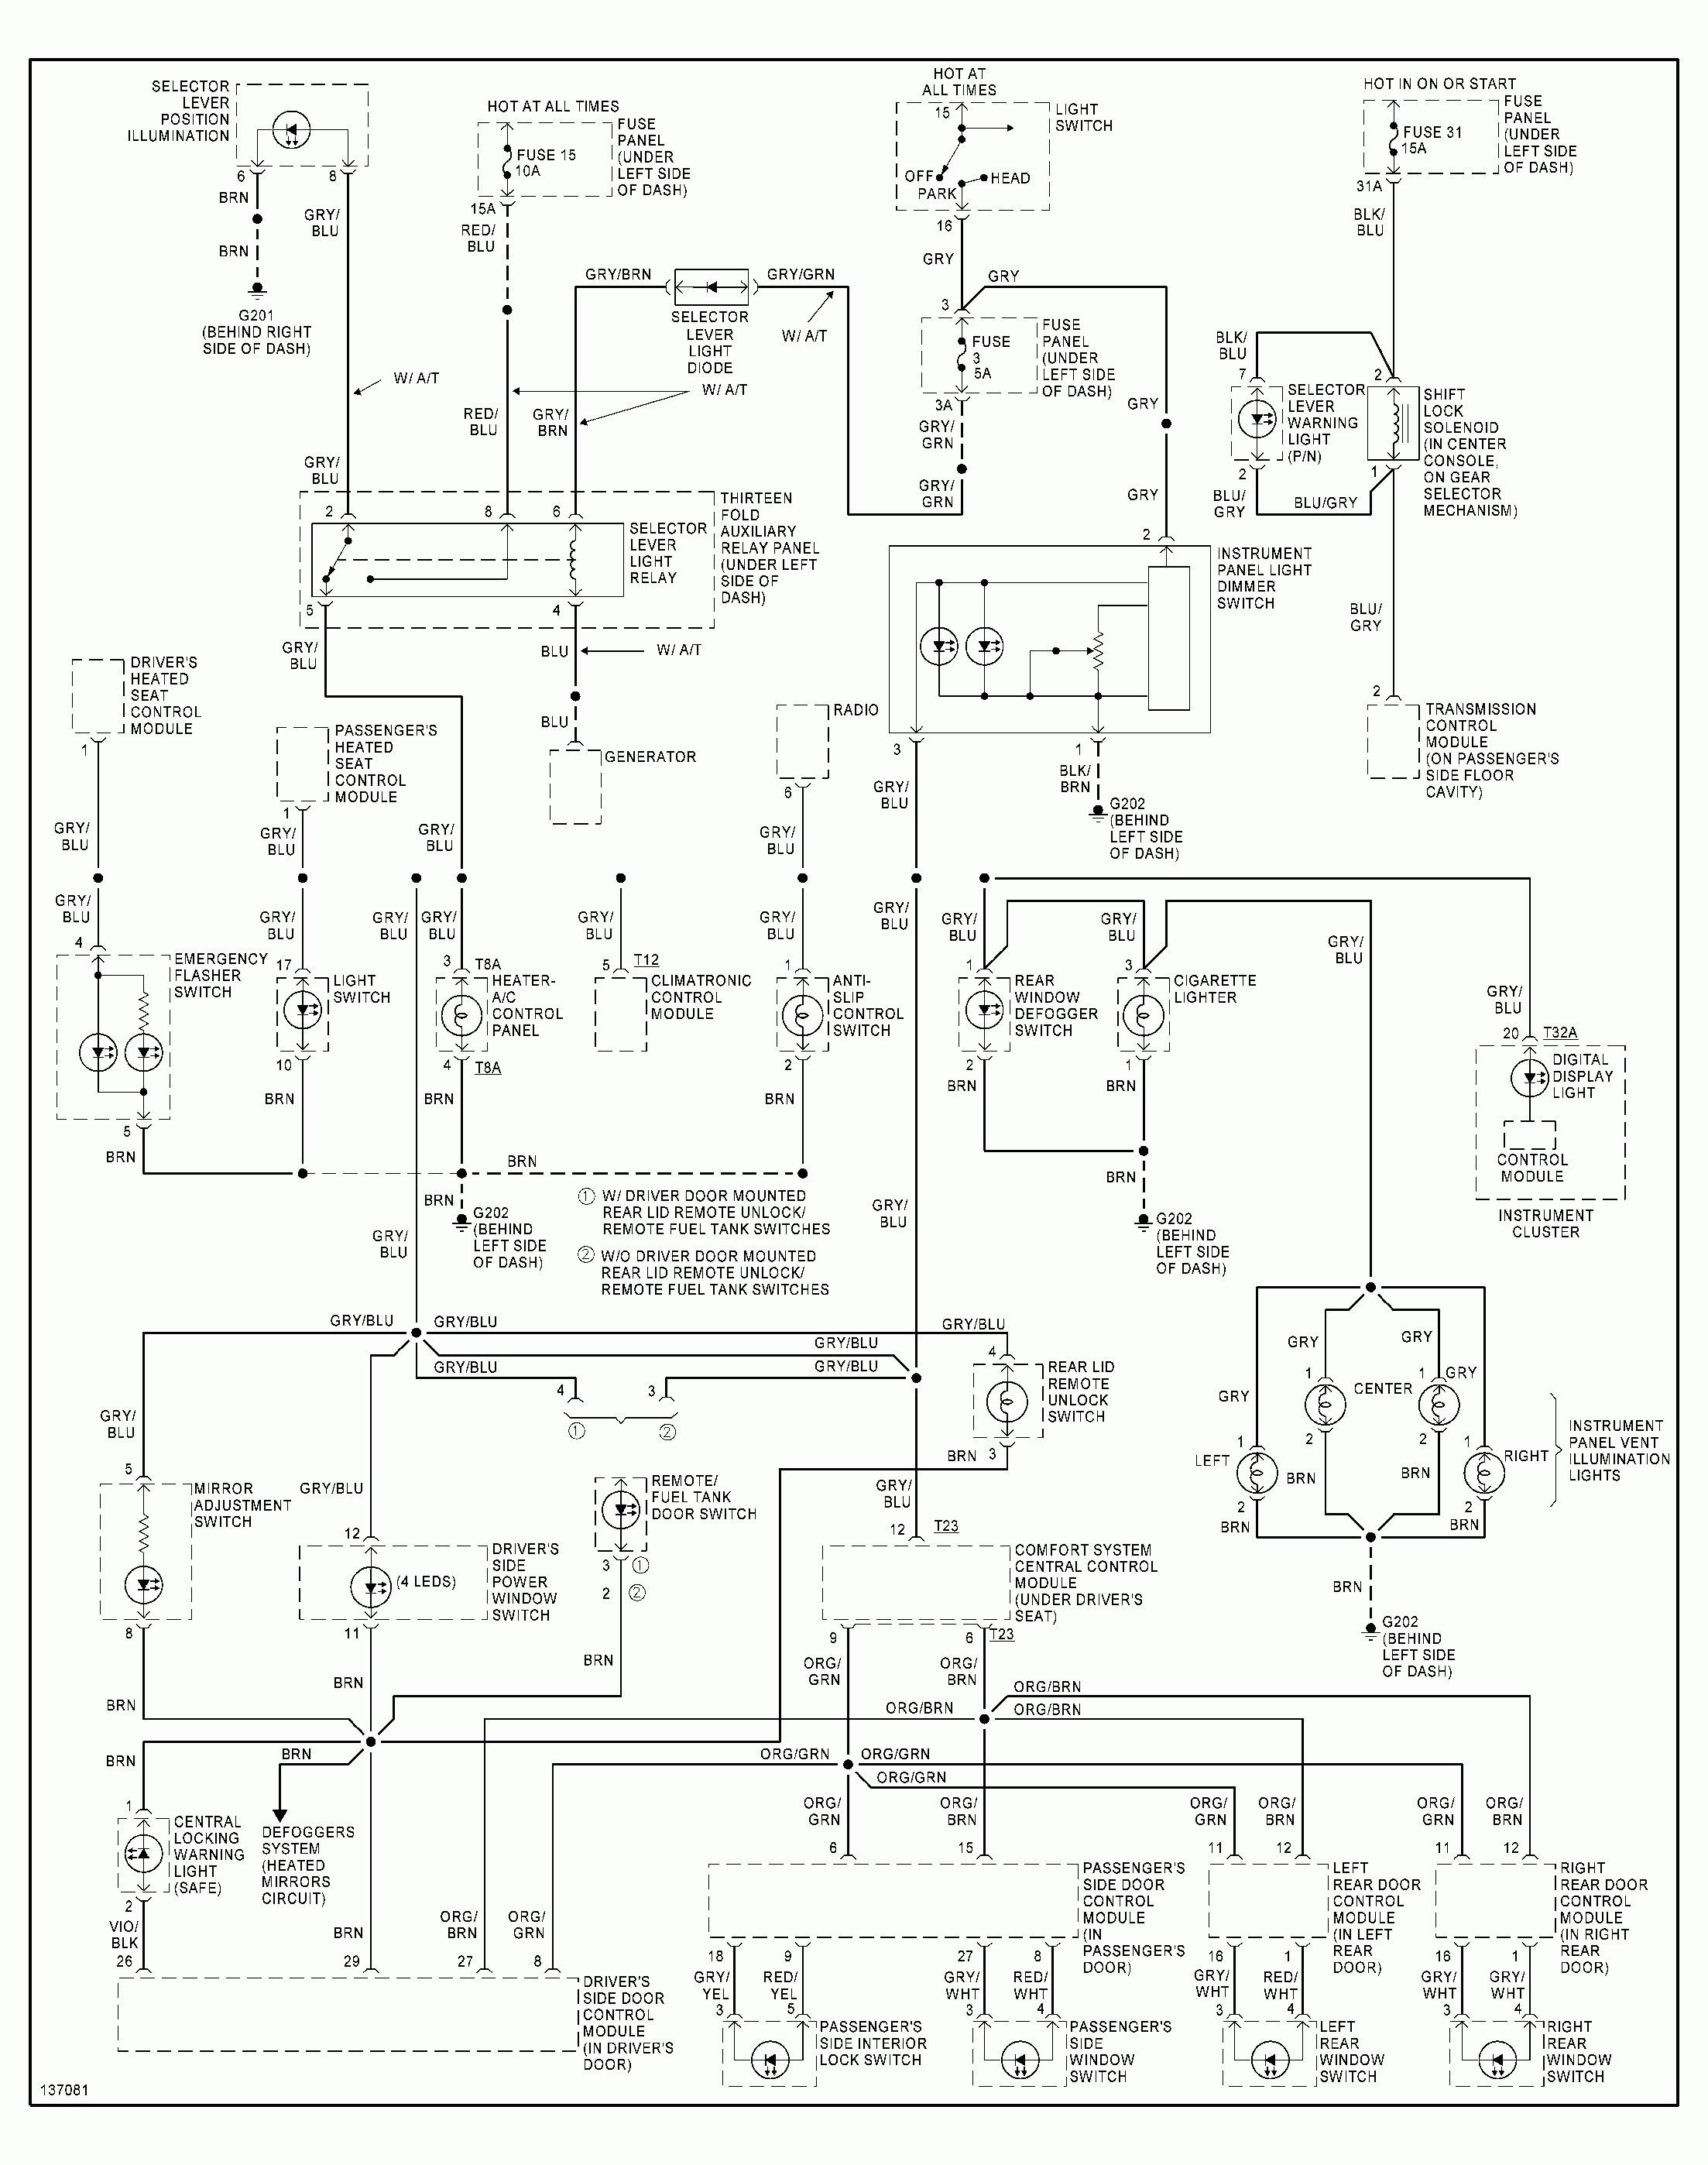 Wiring Diagram For To 35 Ferguson In 2021 Electrical Diagram Wiring Diagram Jeep Grand